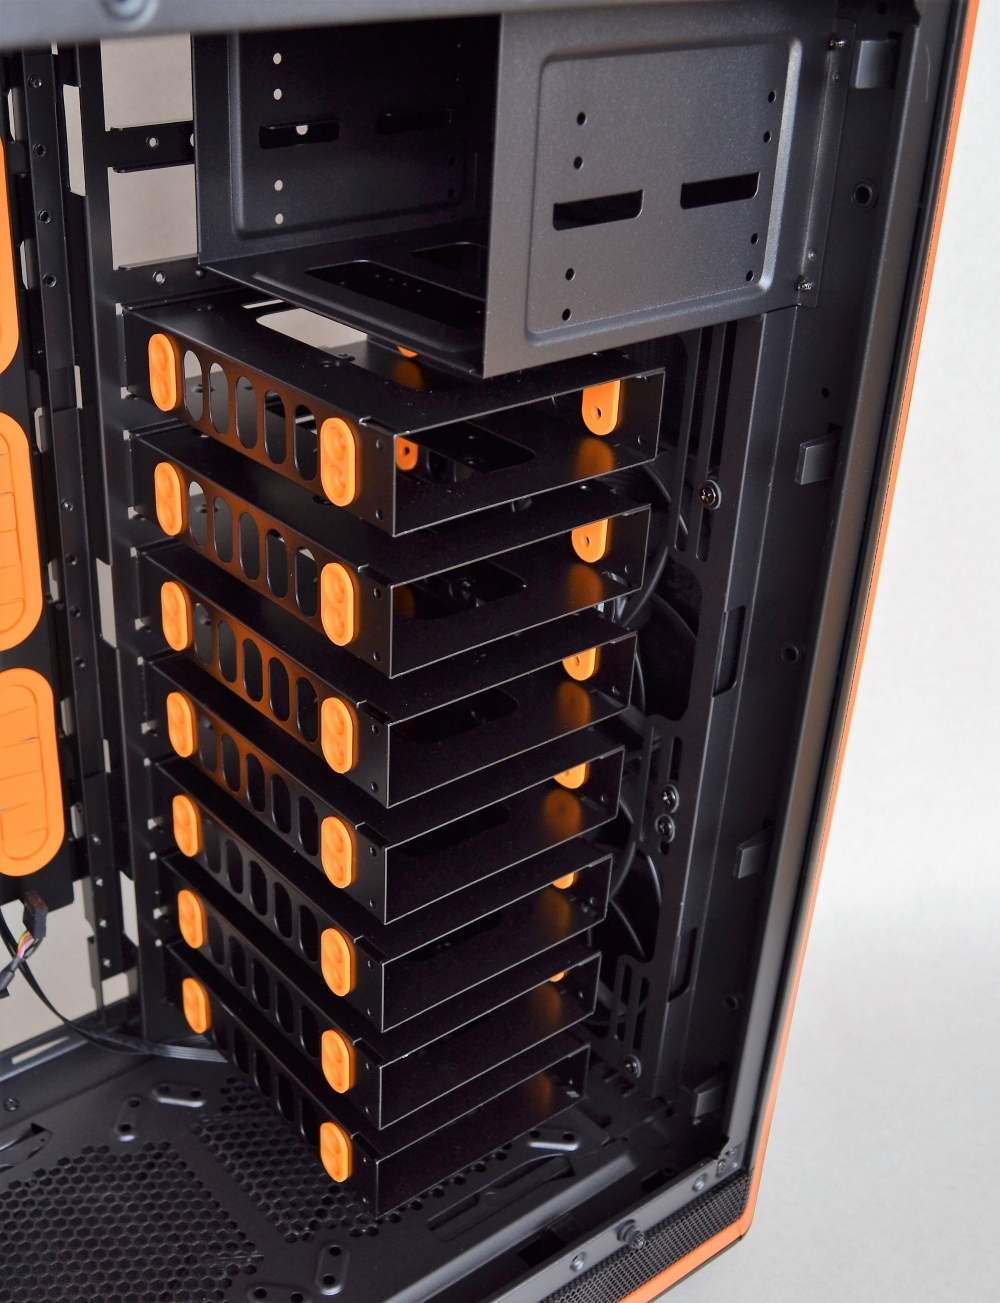 HDD array cages